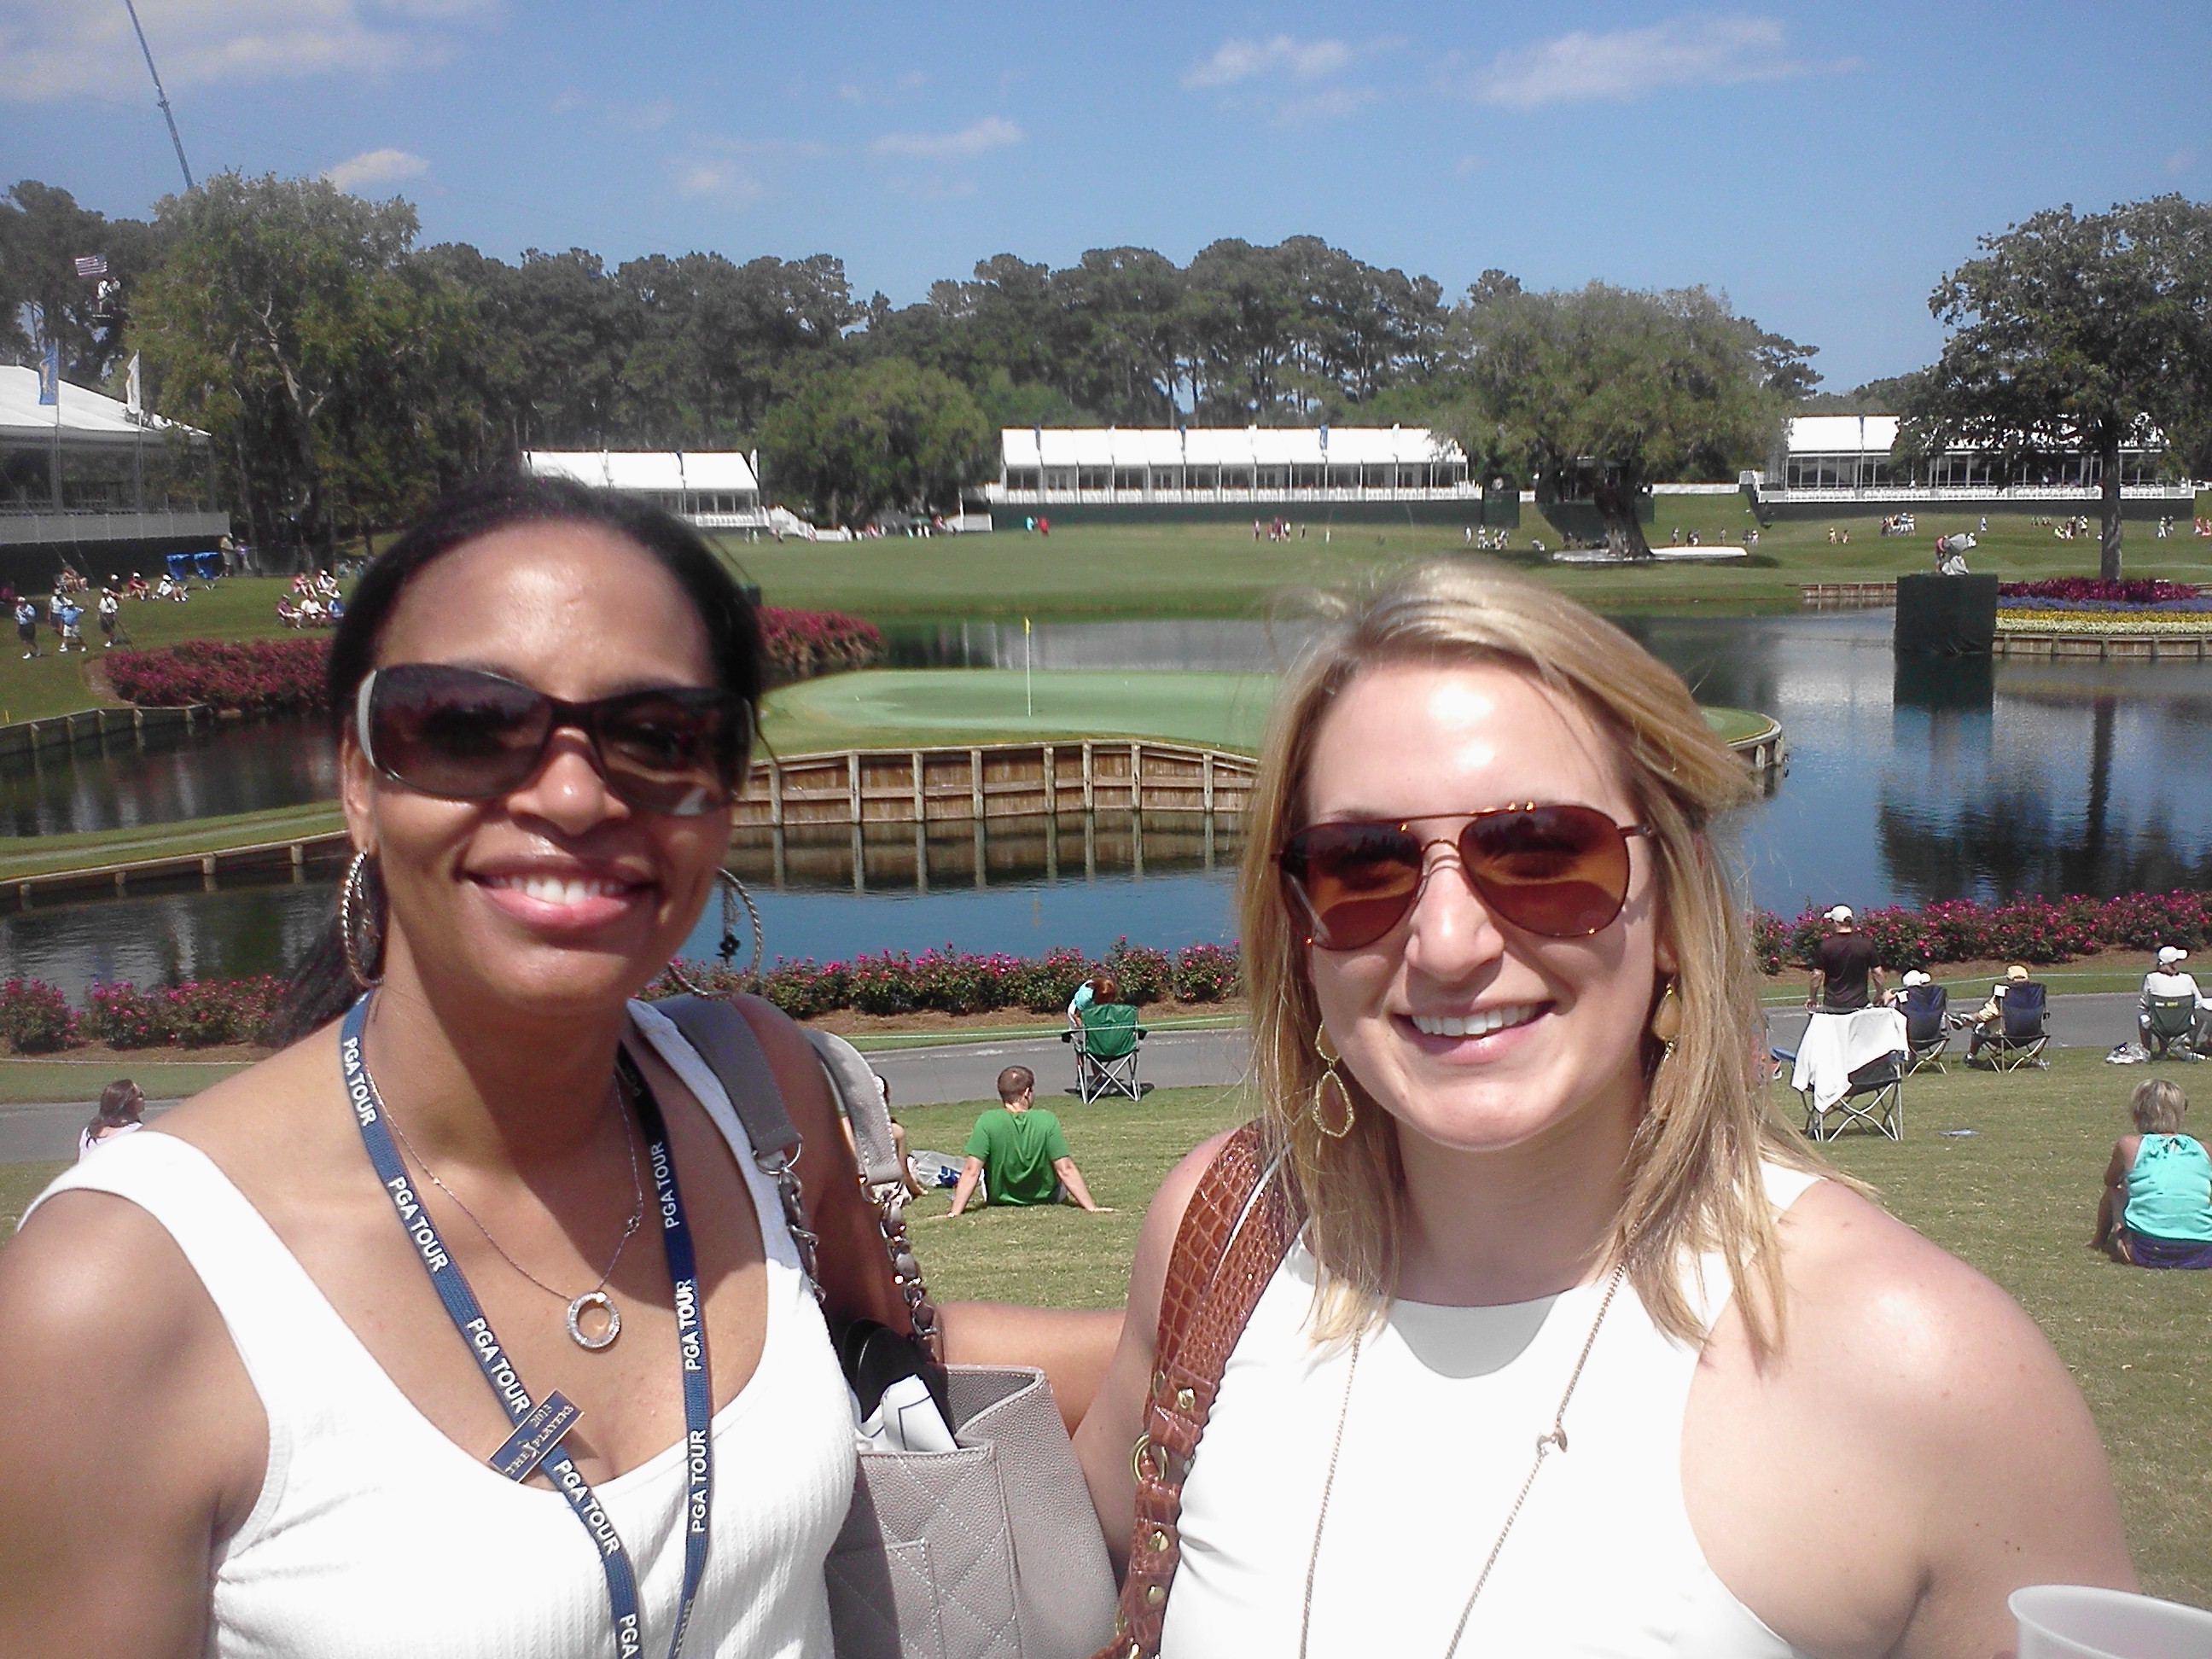 _Astellas Pamela & Katie 17th TPC Sawgrass Wed 5-8-13 PLAYERS